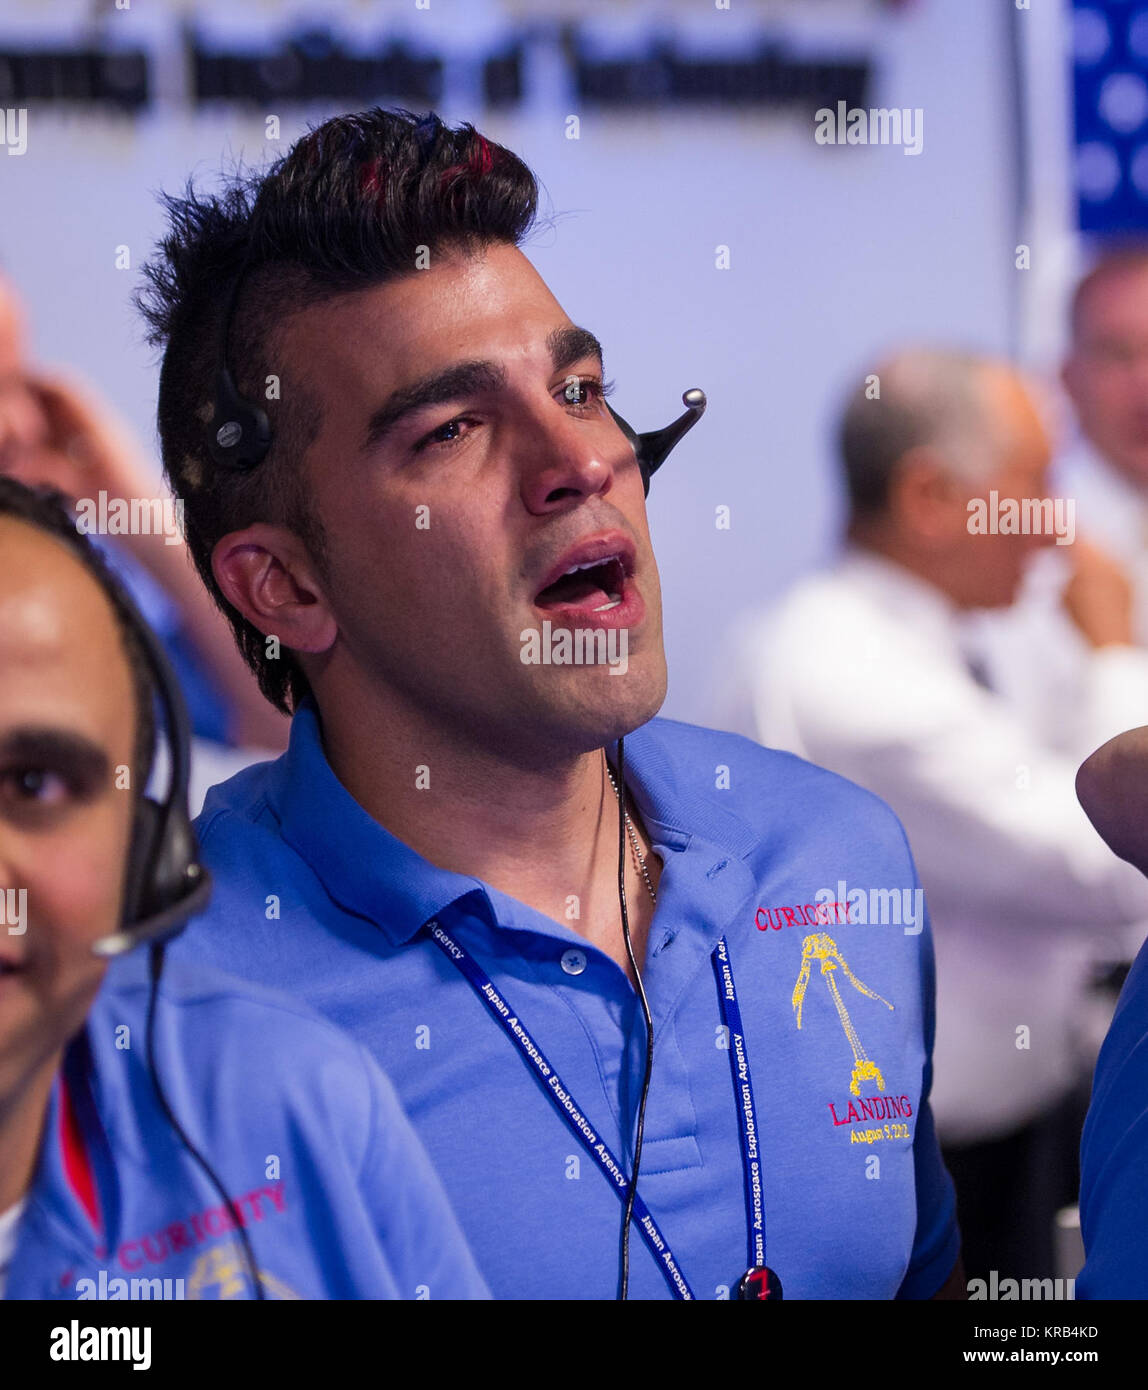 Mars Science Laboratory (MSL) Systems Engineer Bobak Ferdowsi is seen reacting after the MSL rover Curiosity successfully - Stock Image